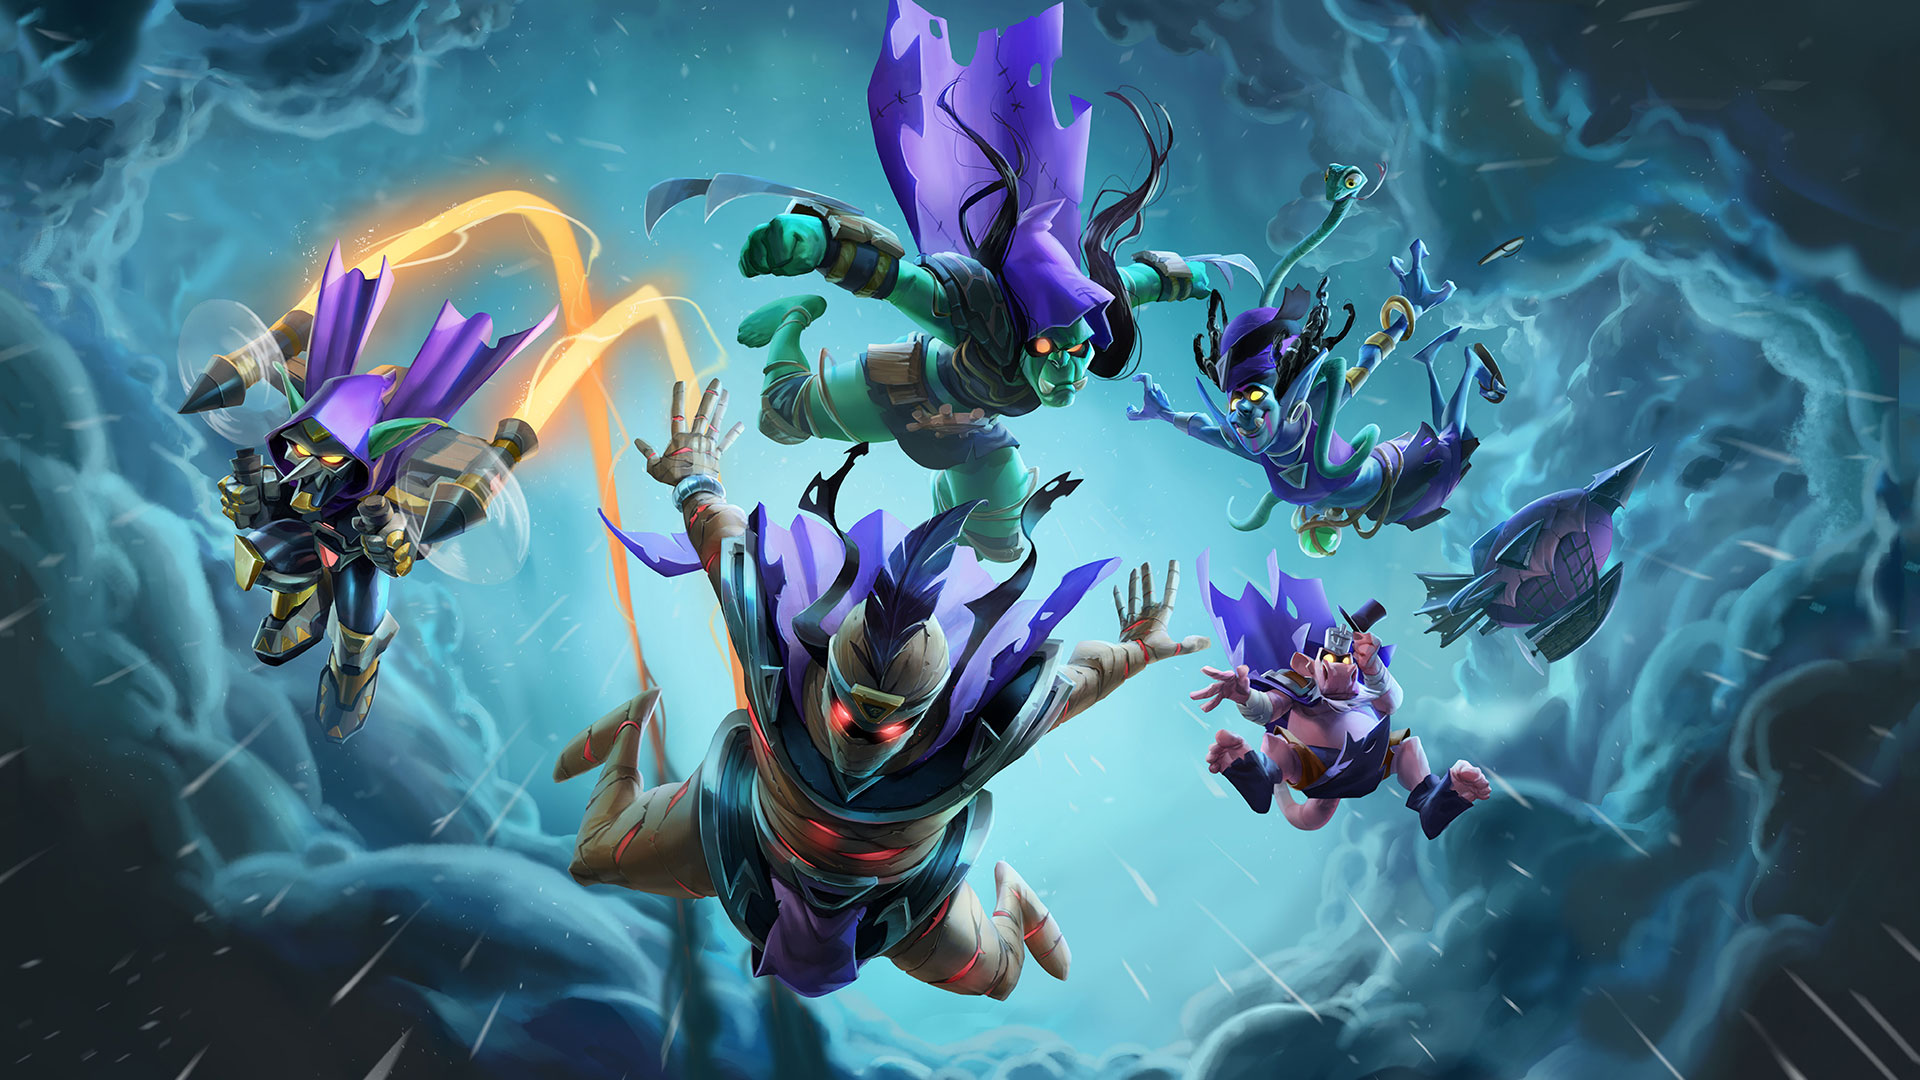 Hearthstone Rise of Shadows Wallpapers HD Mobile Desktop 1920x1080